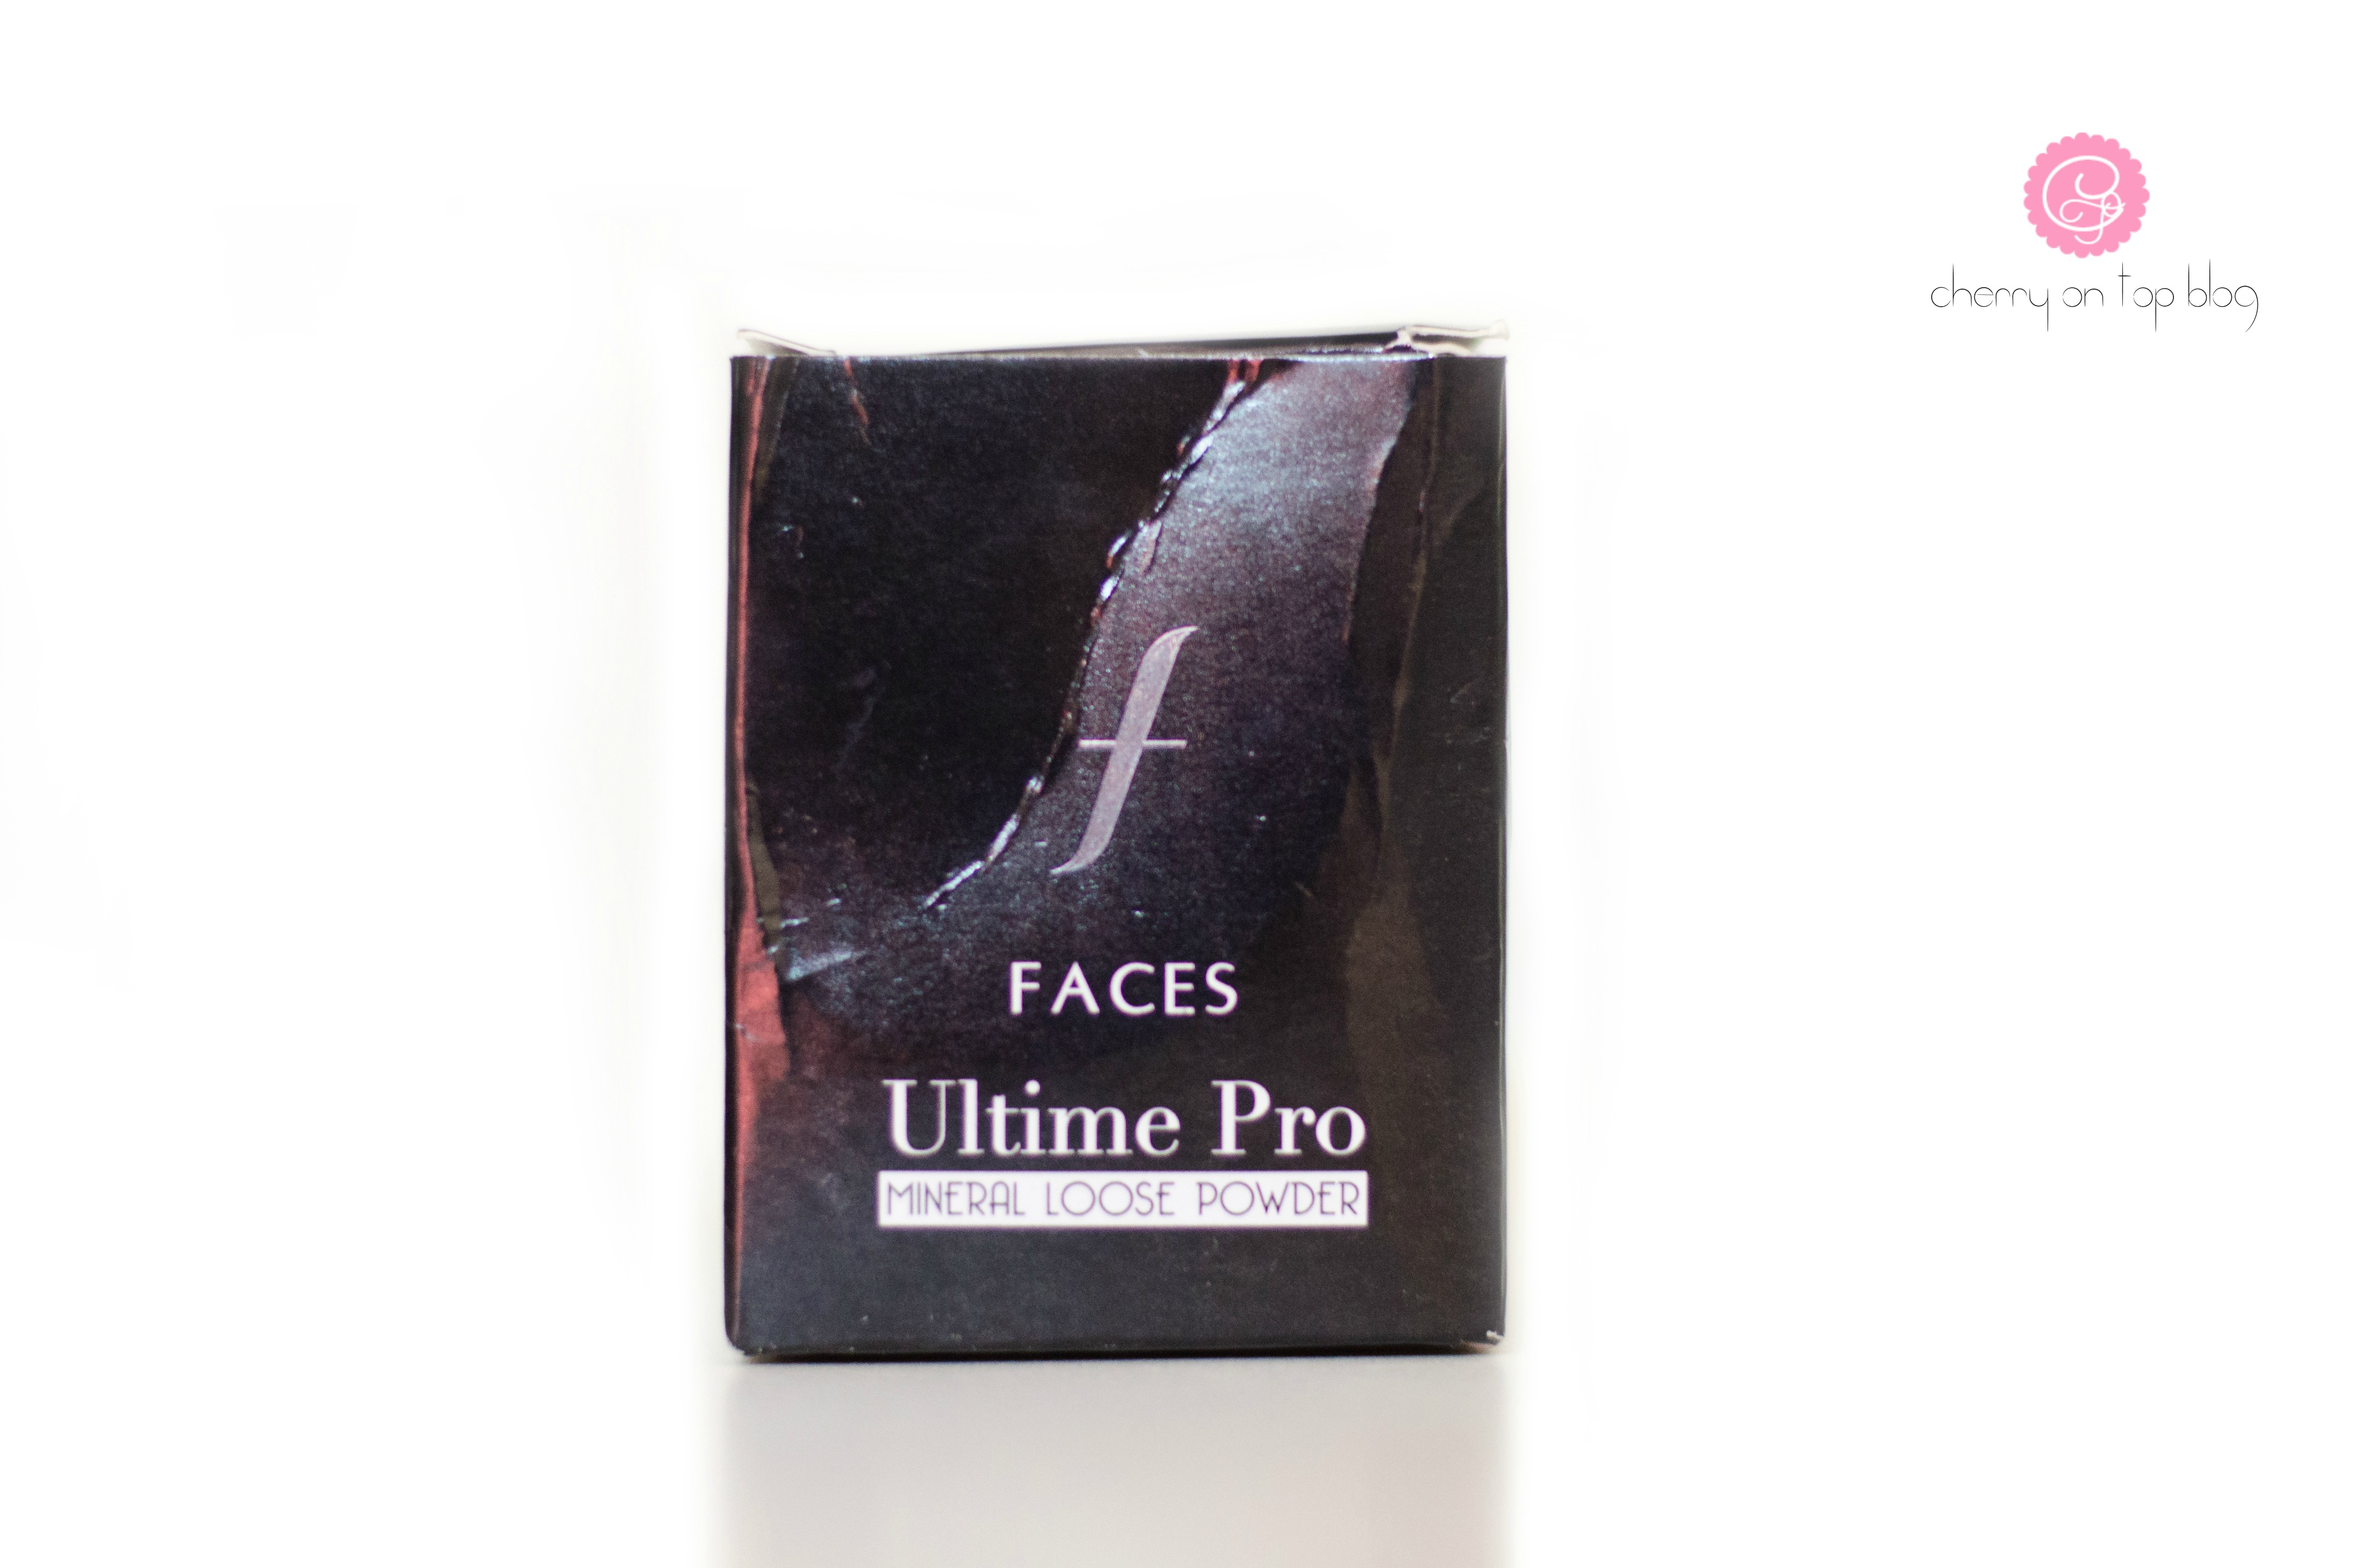 Faces Ultime Pro Mineral Loose Powder Review and Swatches | cherryontopblog.com